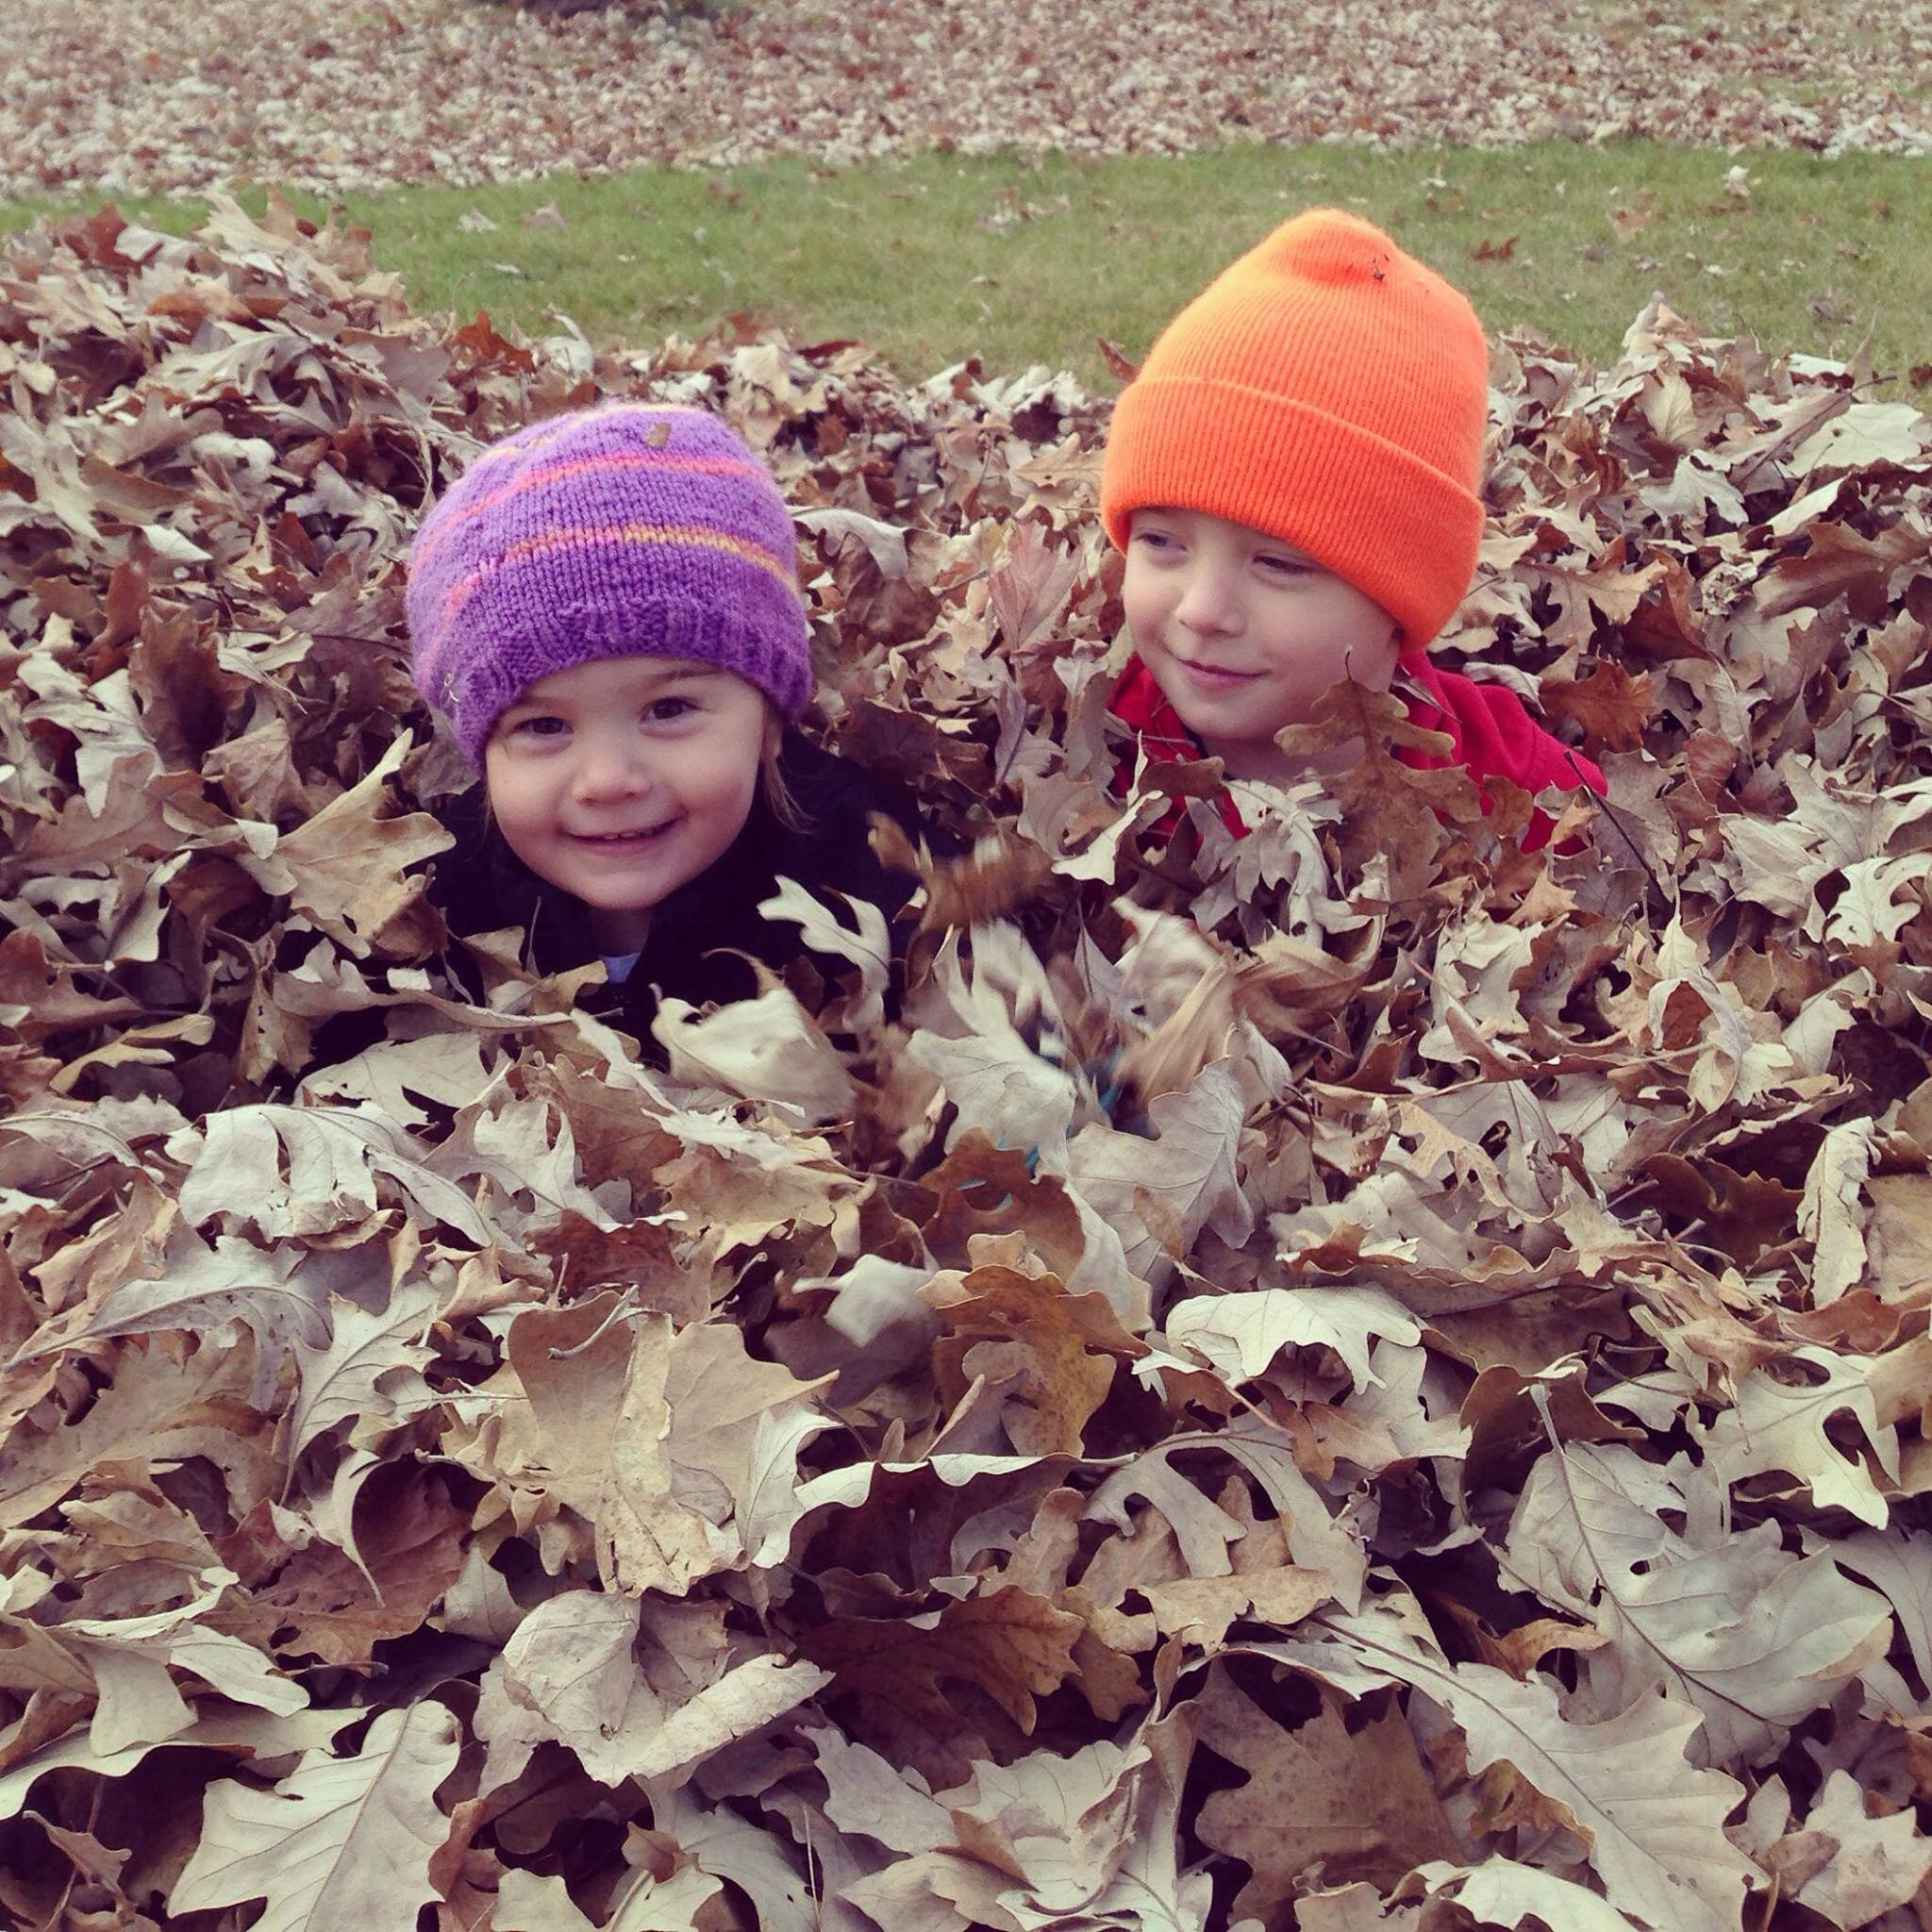 Karin's kids in leaf attire - Minna and Motts. Photo: (c) Karin Erickson